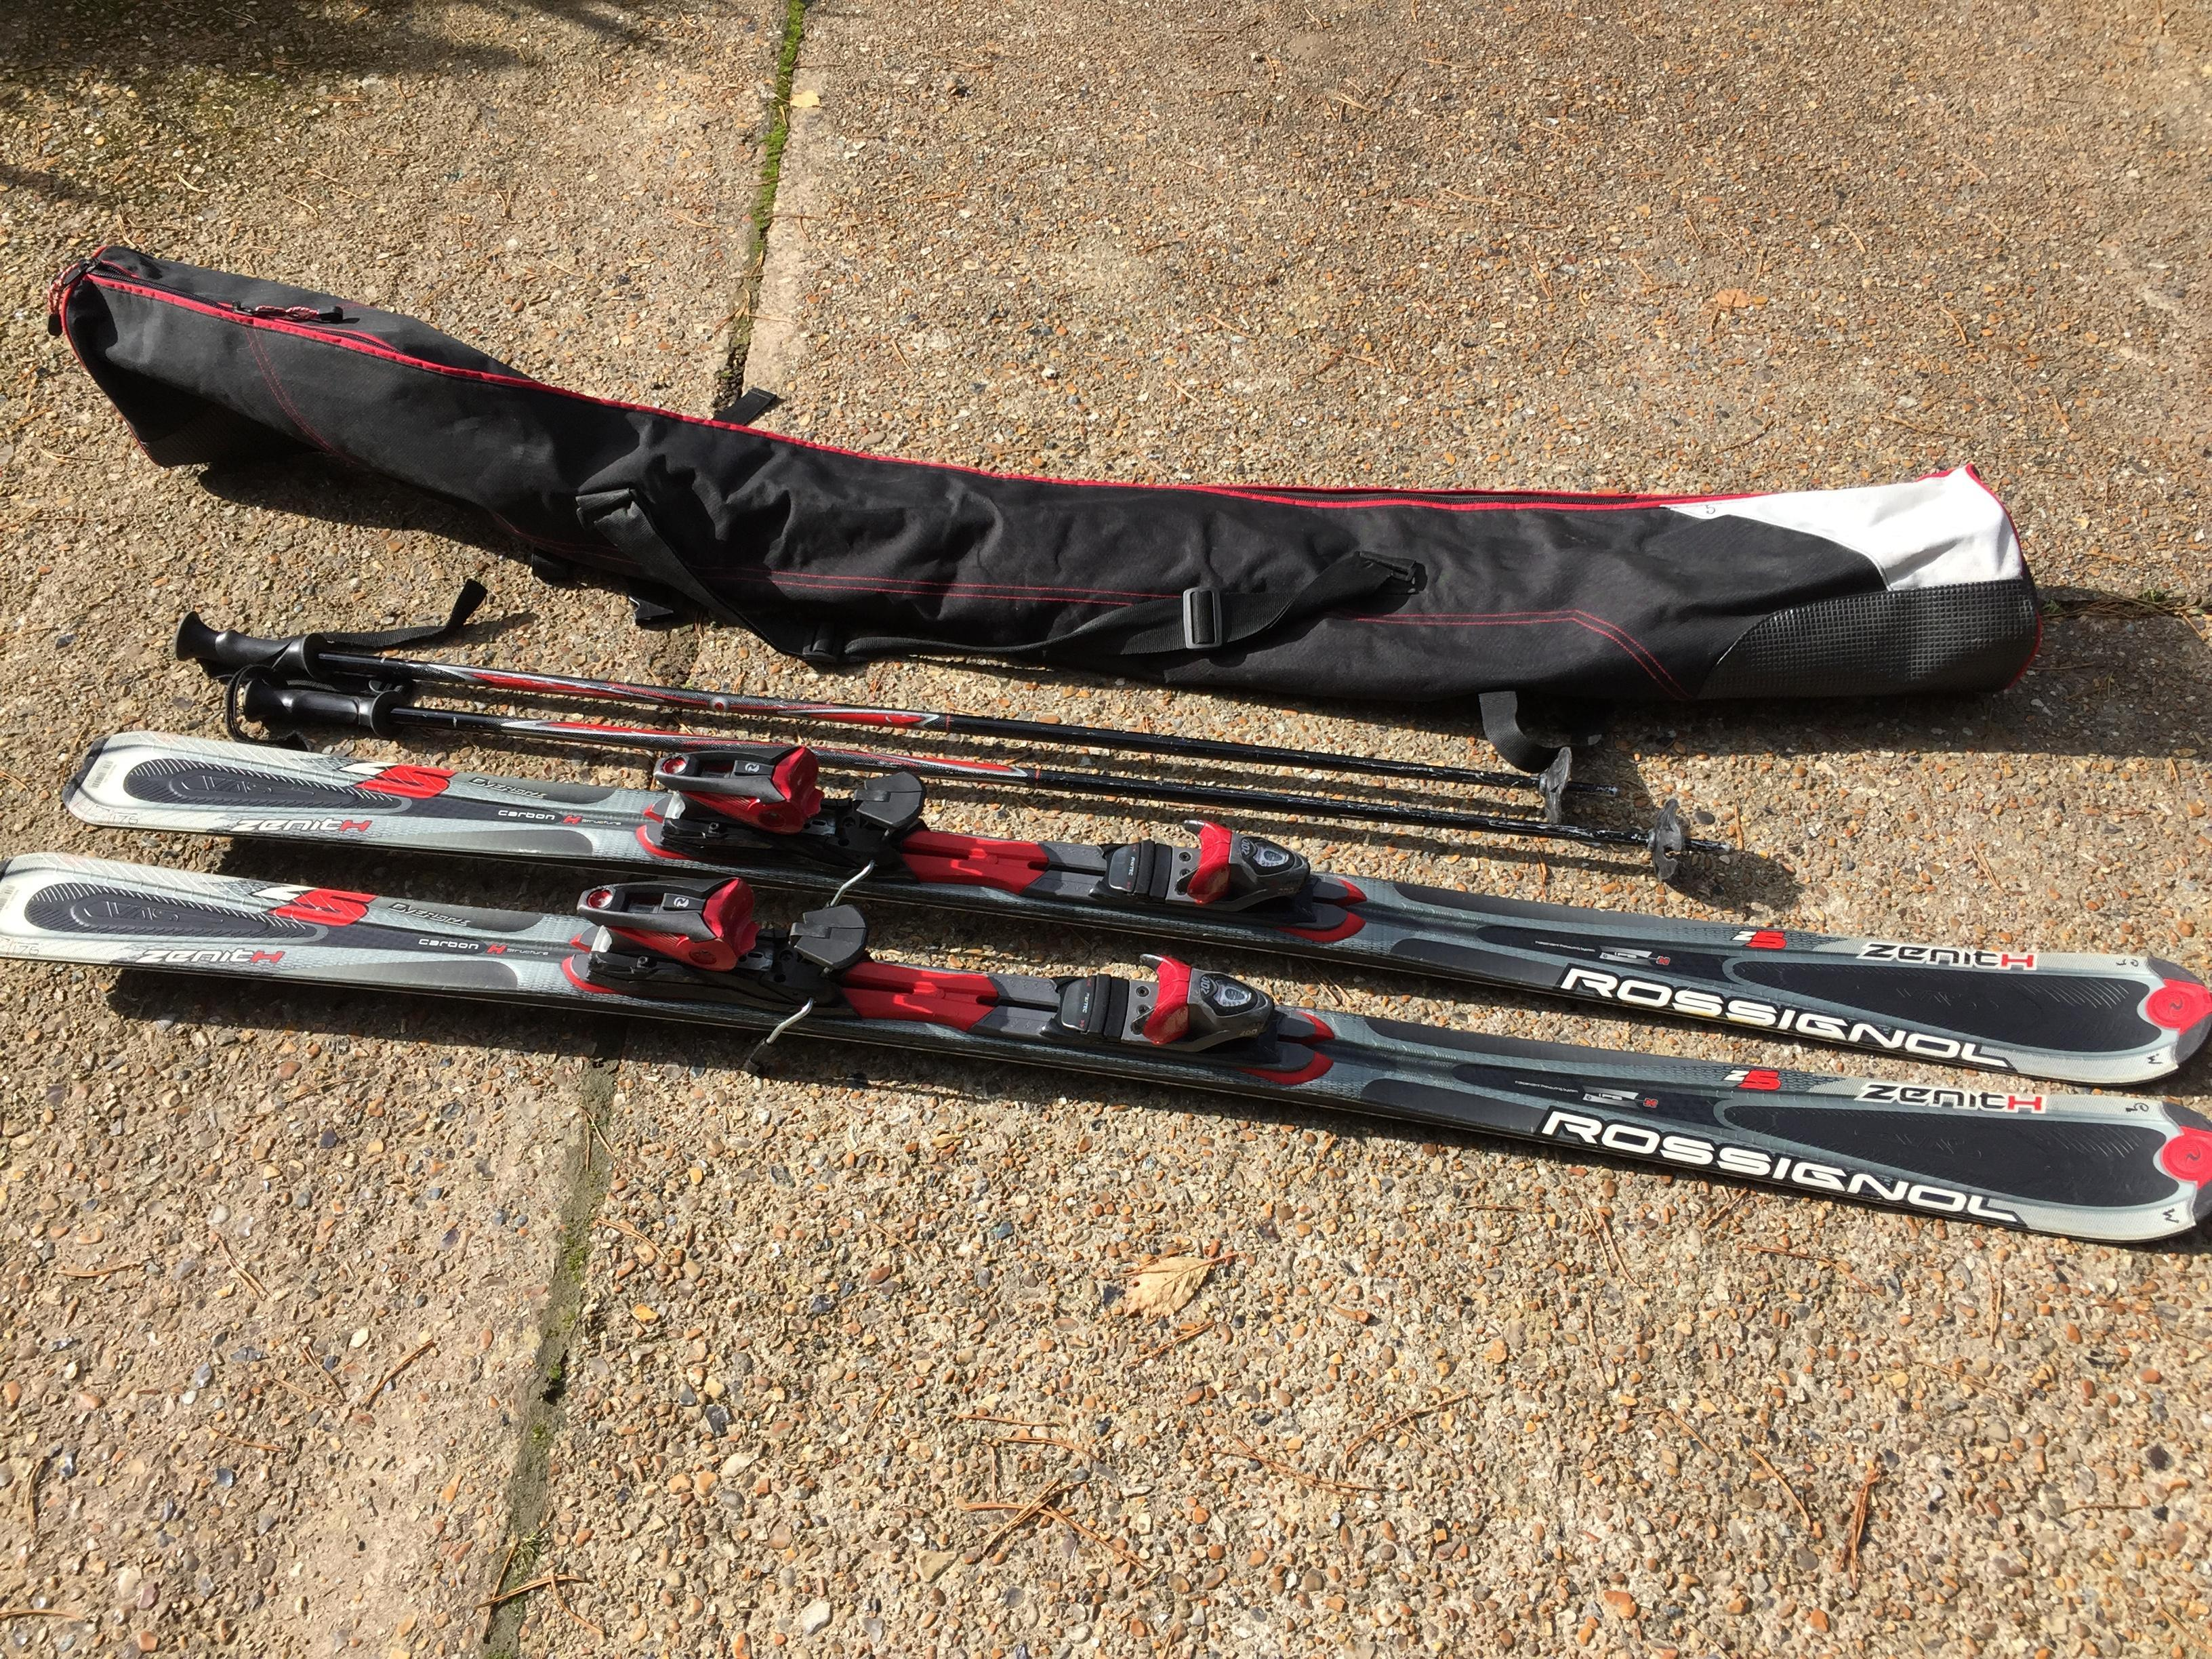 Rossignol Zenith Skis, 176cm Carbon H structure. With ski